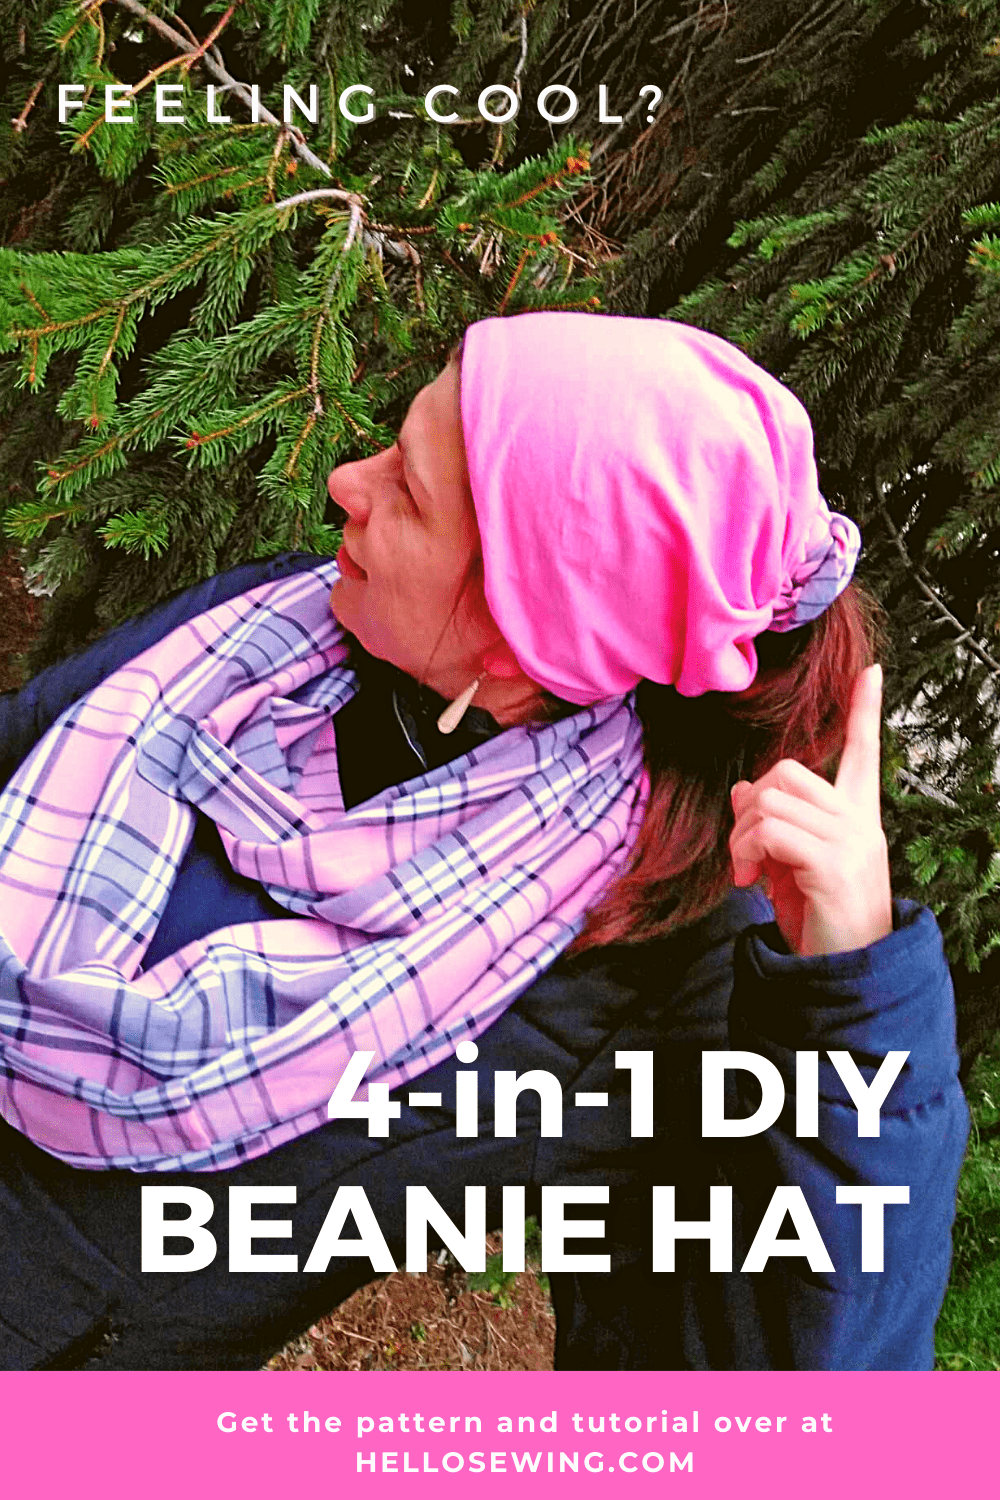 How to sew a beanie (DIY VIDEO)